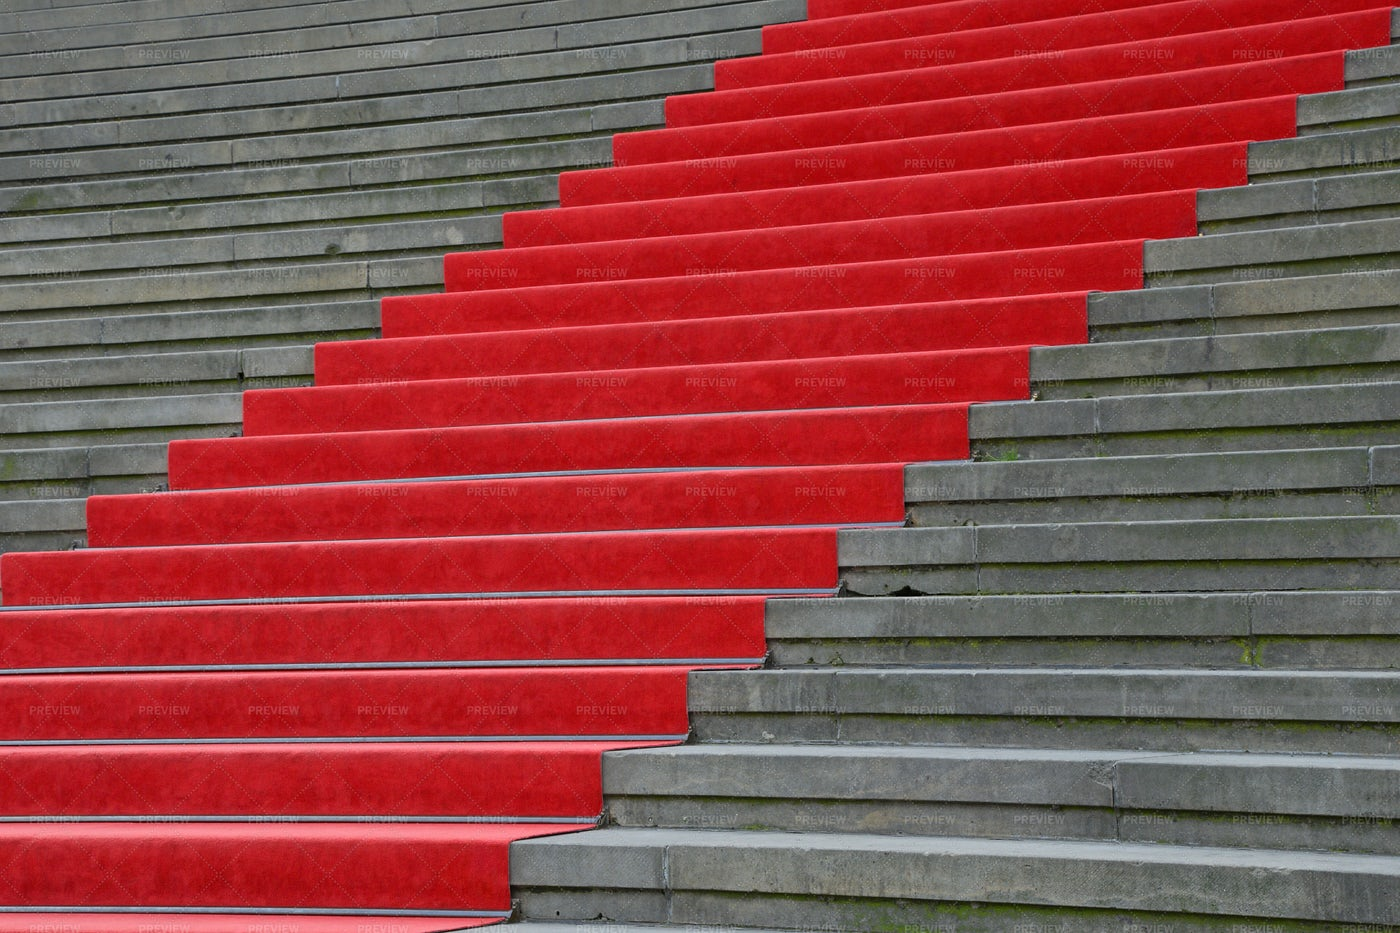 Red Carpet Over Concrete Stairs: Stock Photos